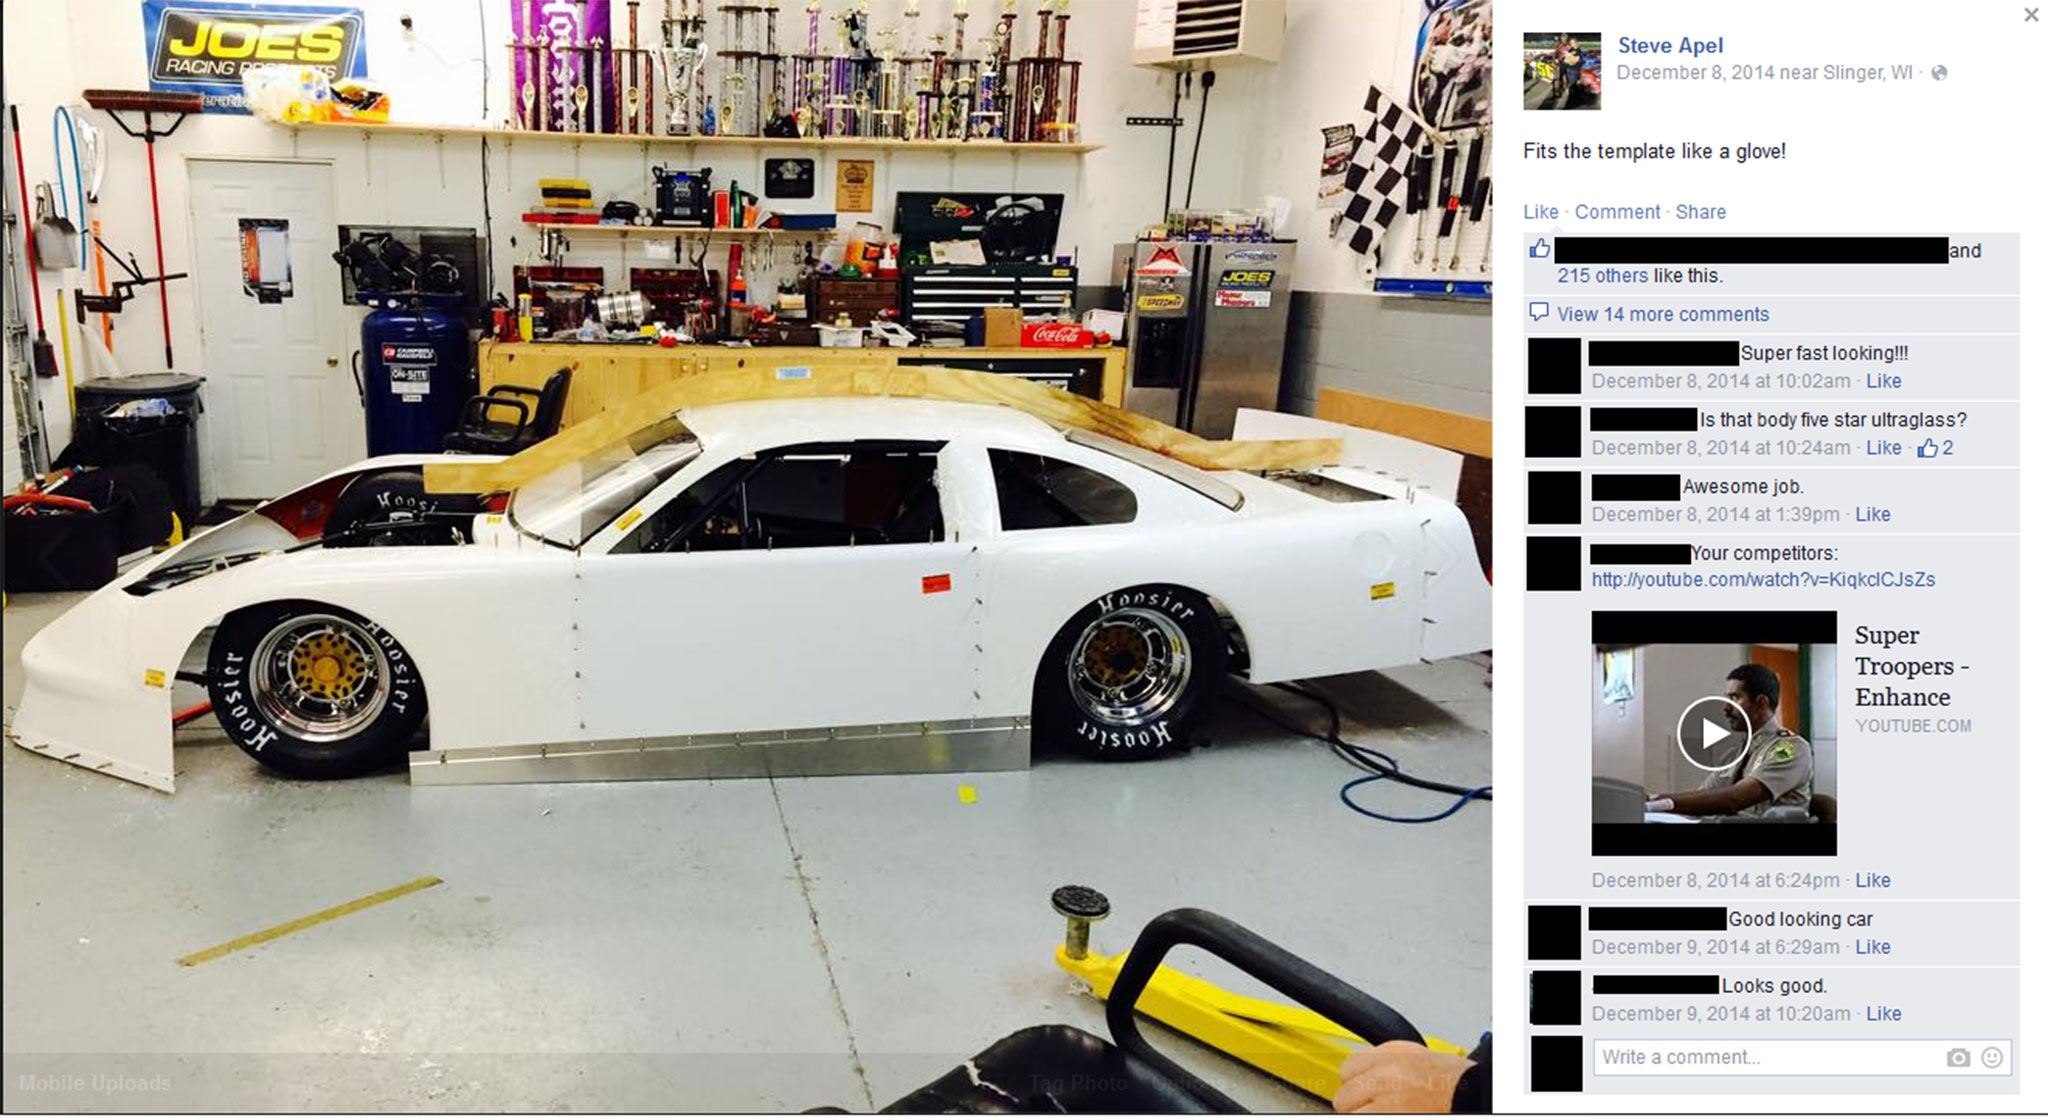 Fans love updates. Pictures of race cars can get them excited for the upcoming season. This was posted to a personal page, so those who are friends with the driver can see it. Remember, if you do post to your personal page, post to your racing page too. Don't miss those fans.